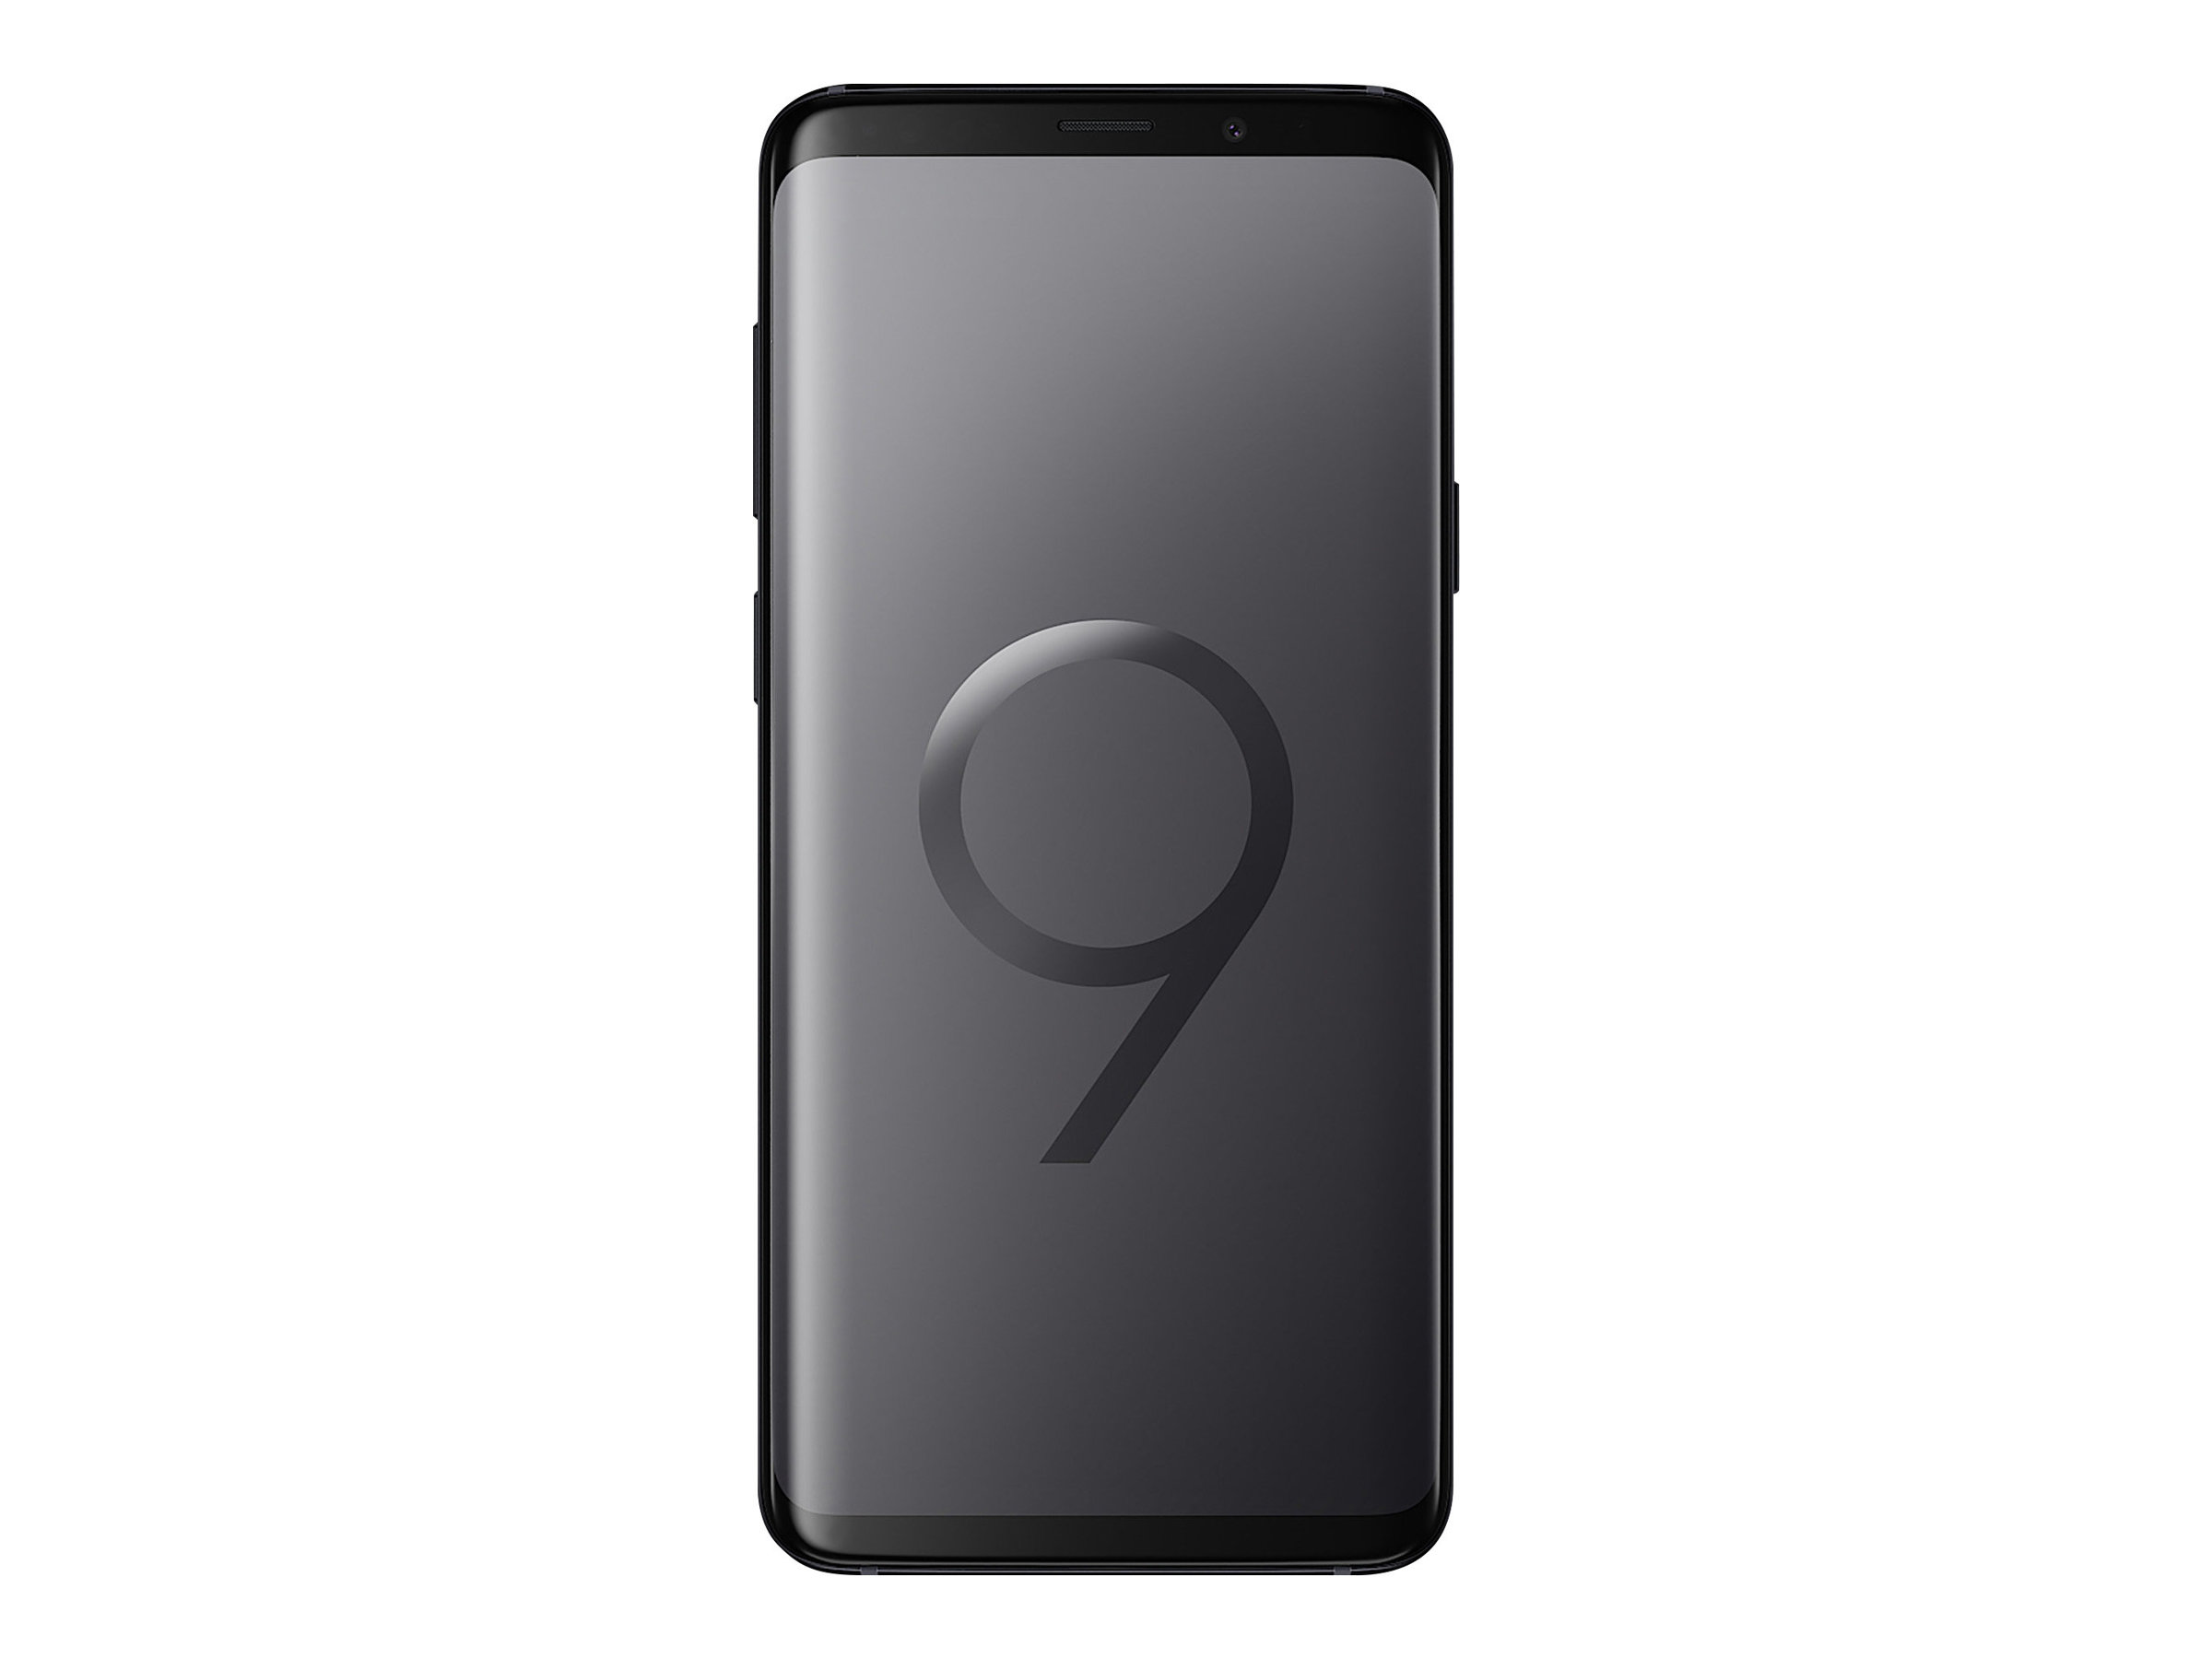 Samsung Galaxy S9+ - Smartphone - 12 MP 64 GB - Schwarz